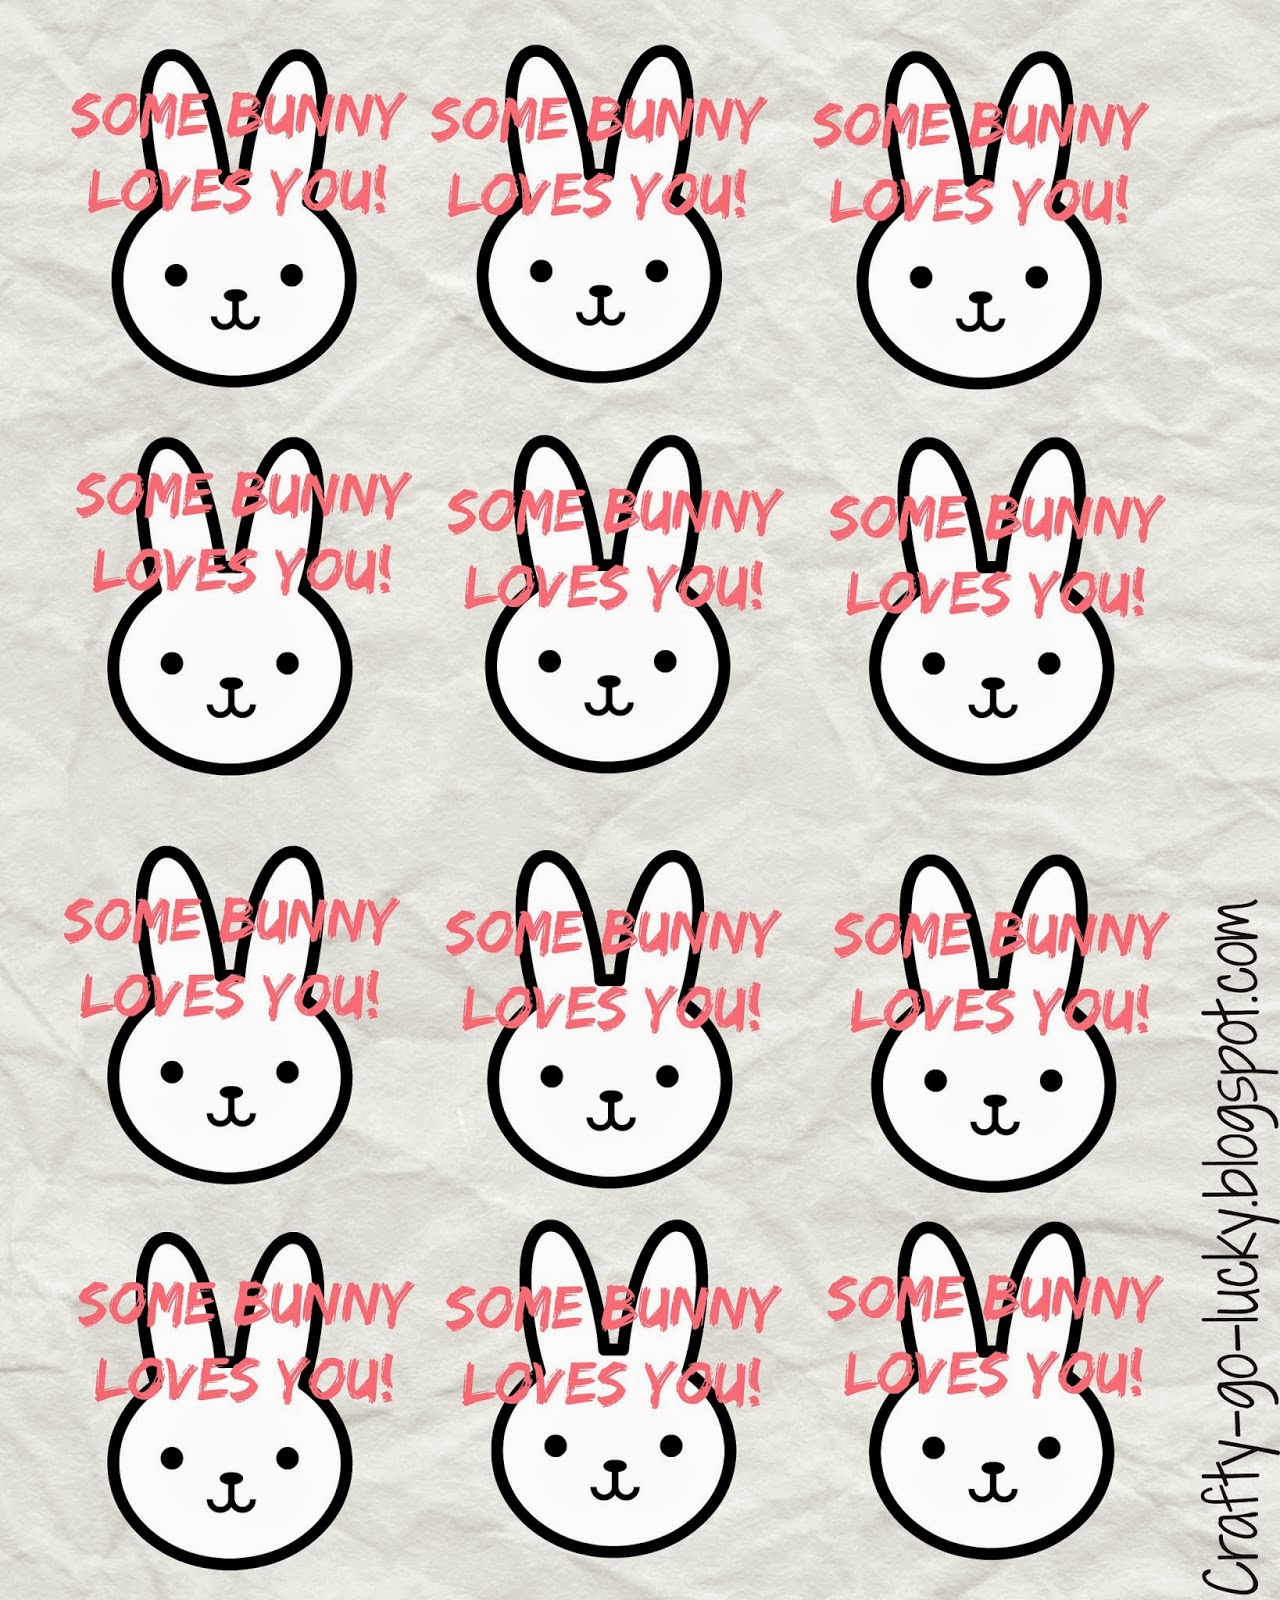 Some bunny loves you! FREE PRINTABLE treat/gift tags